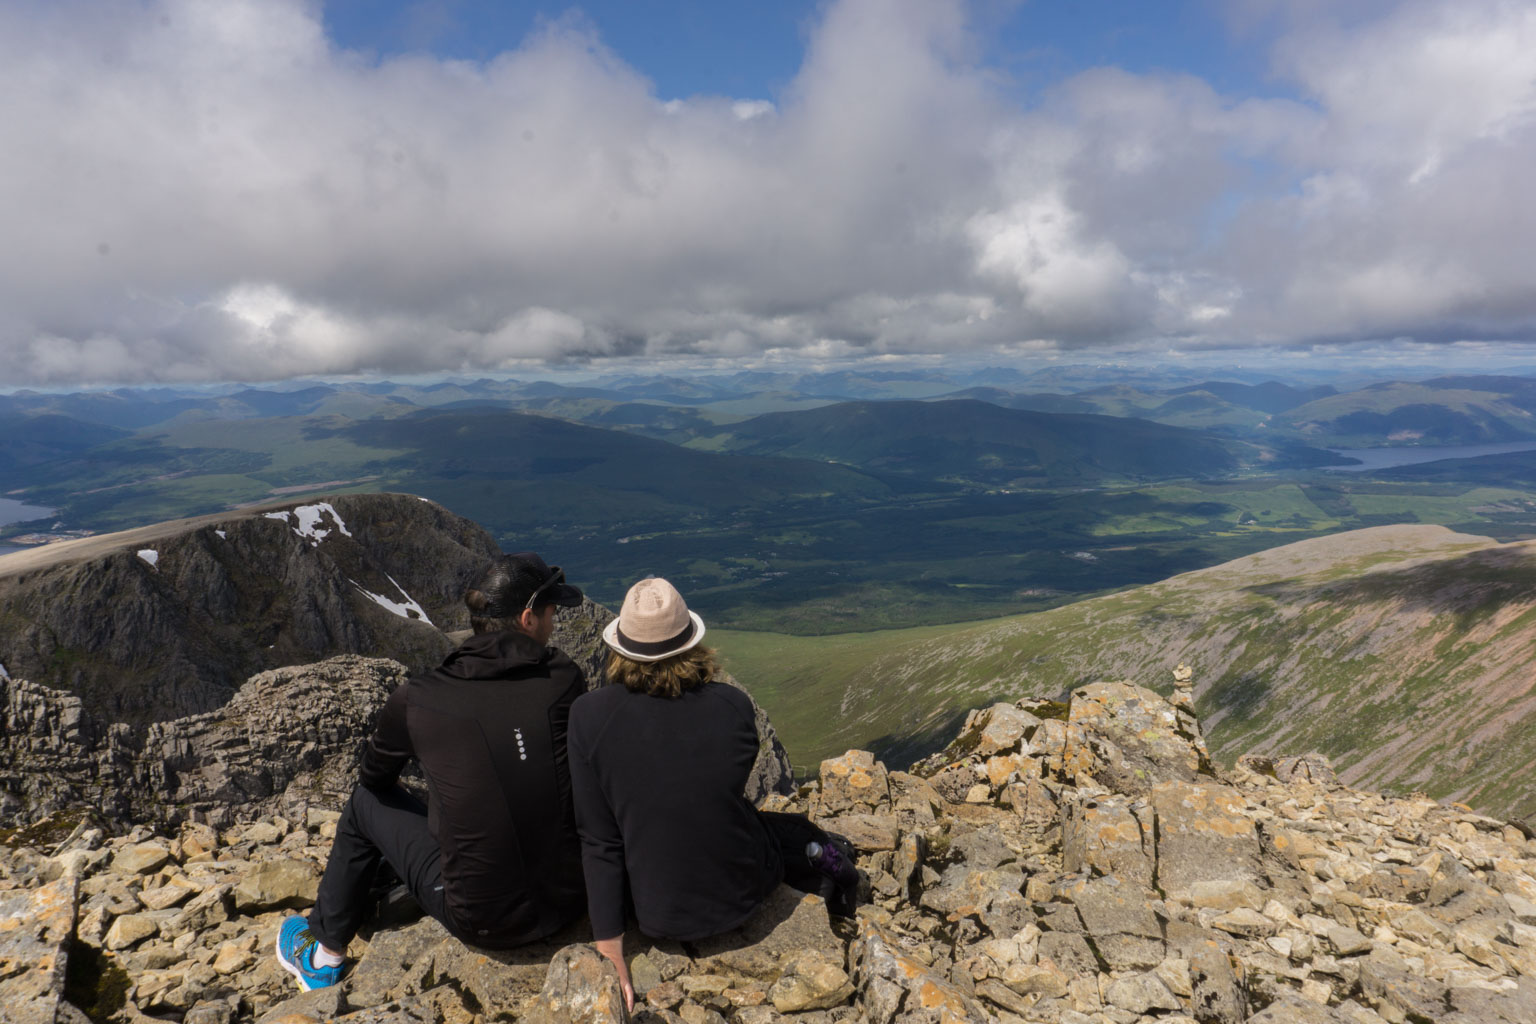 The Two Drifters admiring the view after climbing to the top of Ben Nevis, Scotland